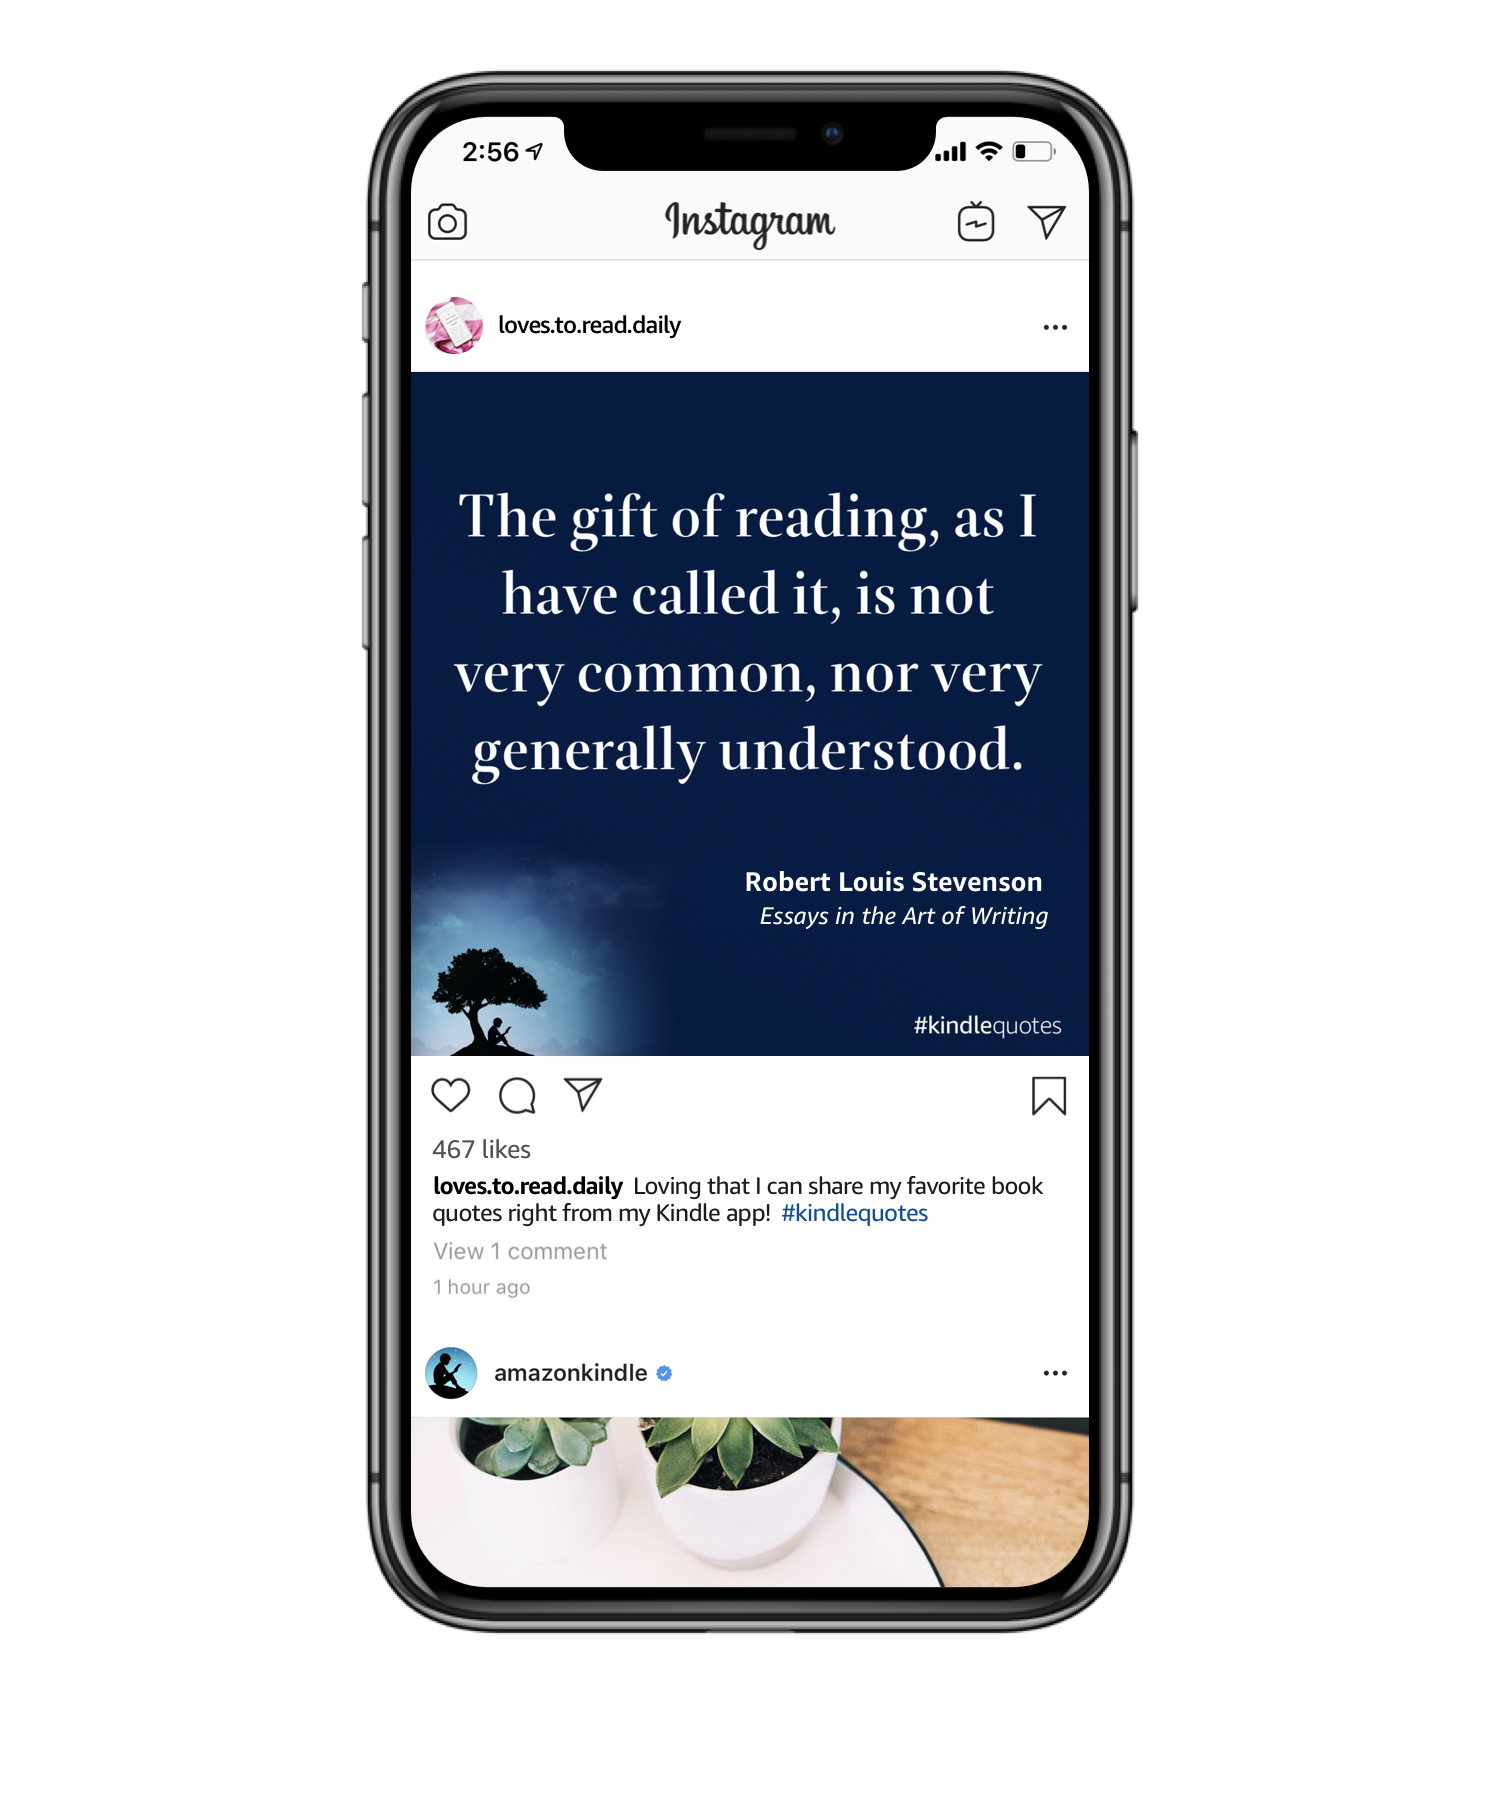 Instagram App on iPhone showing Kindle Quote post.